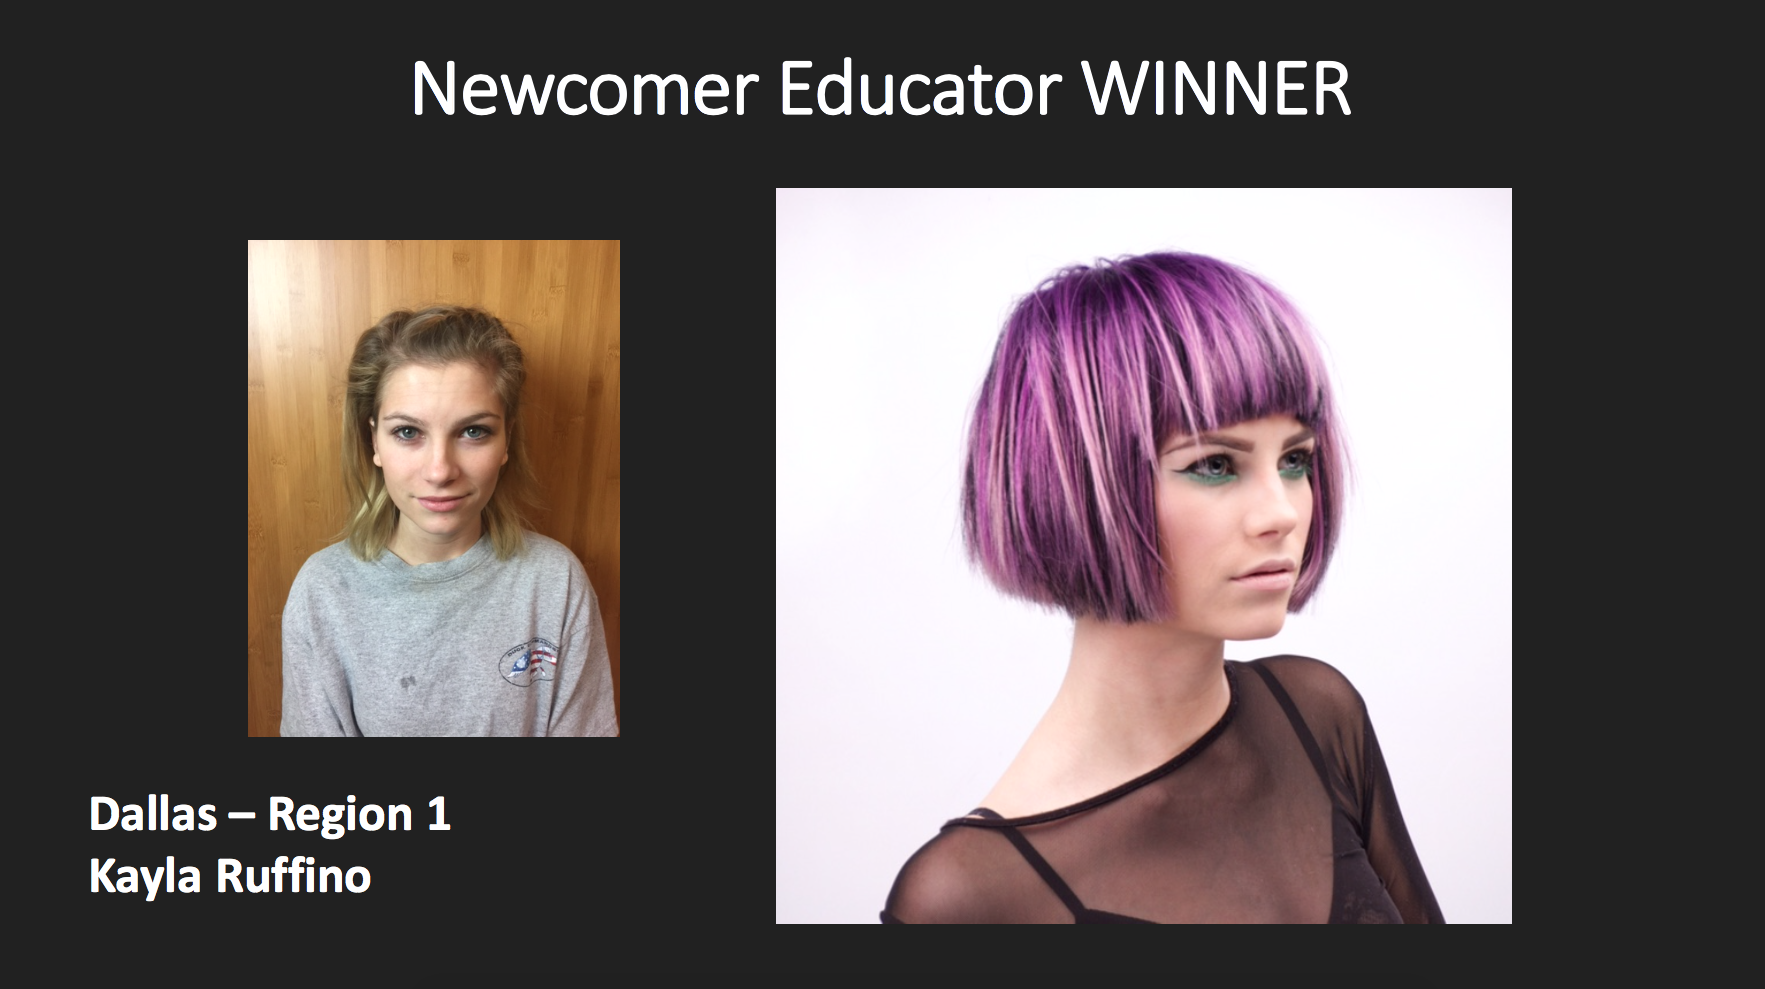 naha-dallas-winner-educator